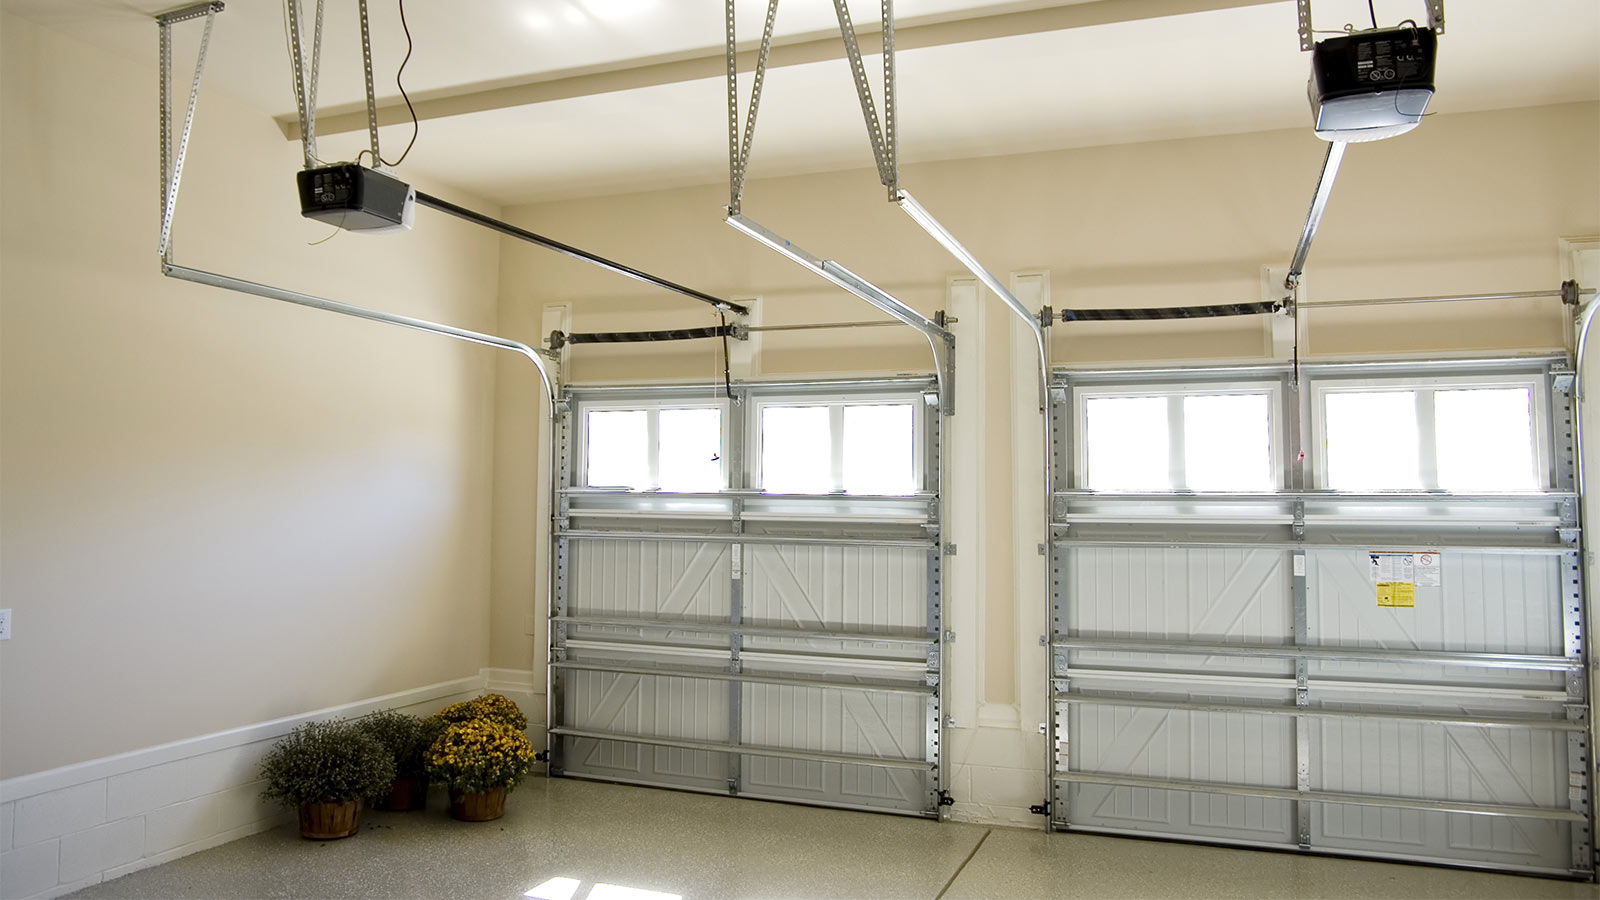 Sectional Garage Doors from Roller Shutters Wickford suppliers.